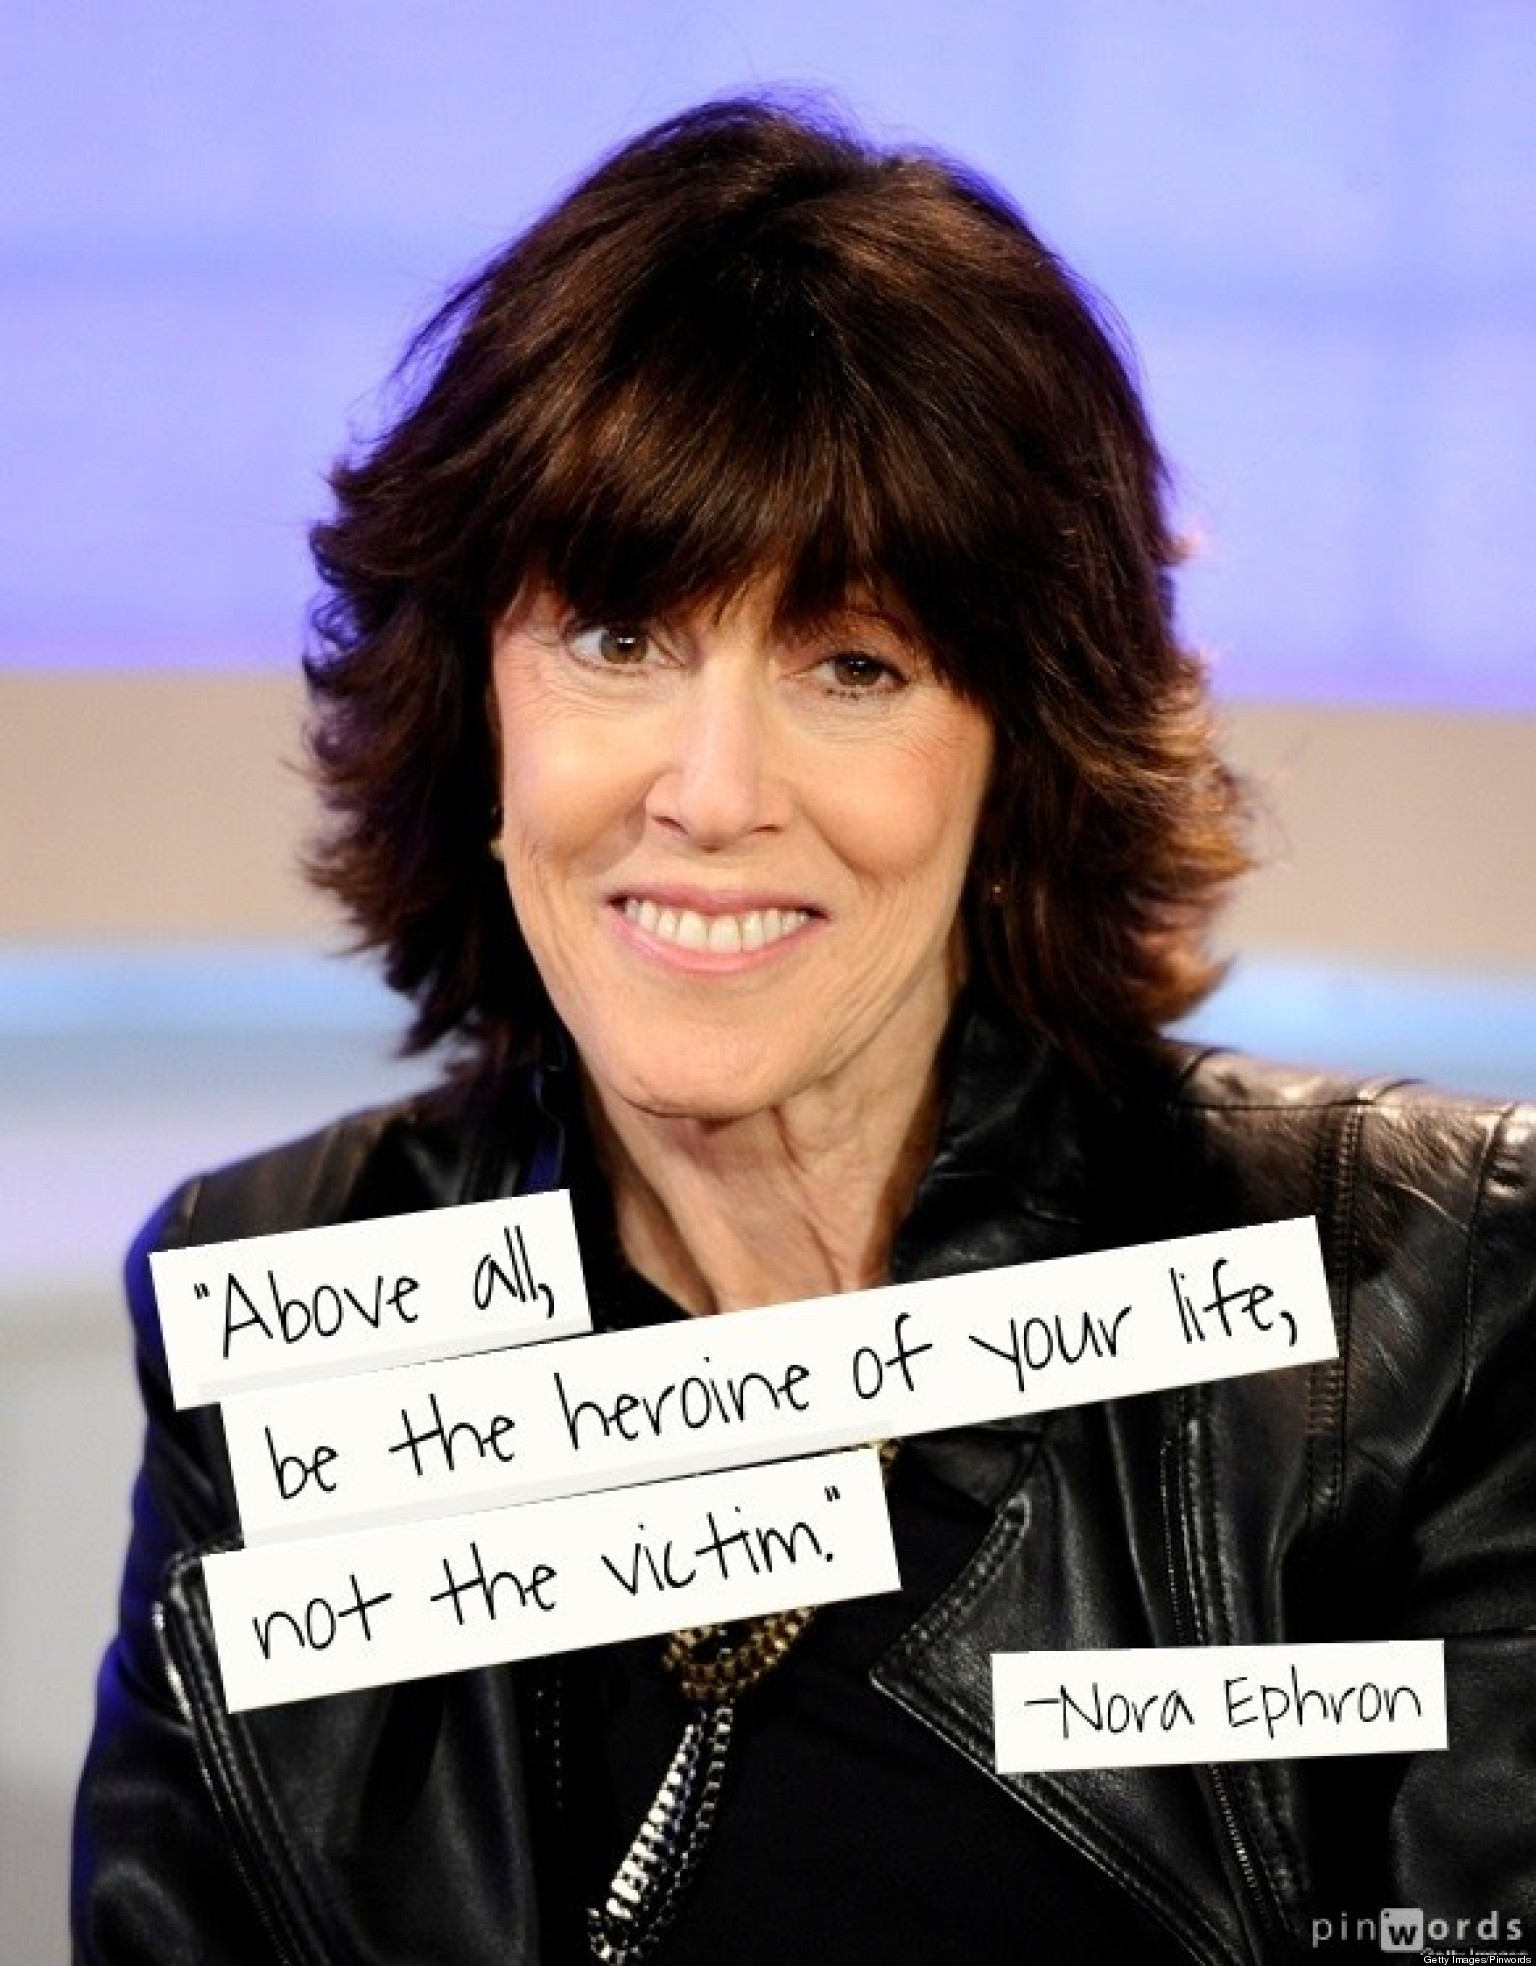 nora ephron quotes to get you through a breakup photos the nora ephron quotes to get you through a breakup photos the huffington post